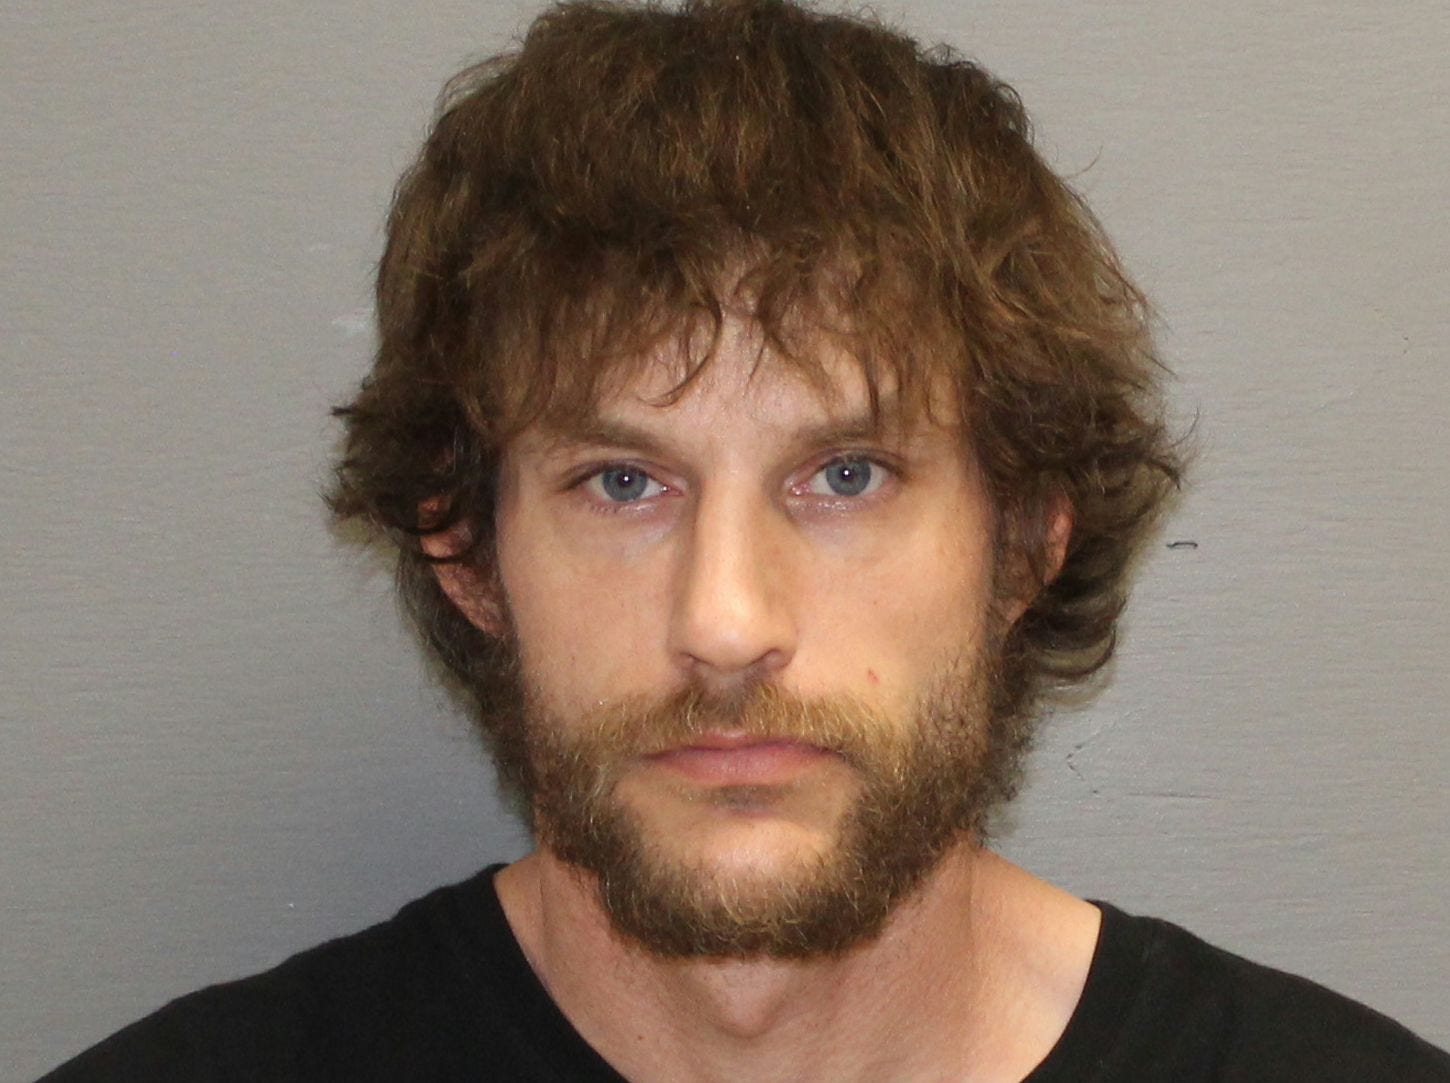 Diehl, Phillip Scott:  38 yoa, white male, 6', 155#, black hair, blue eyes, wanted on:  3 warrants, Bail Jumping, felony, Violation of Terms of Suspended Sentence on Theft, felony, and Fail to Abide on Criminal Possession of Dangerous Drugs, felony, total bond $41,000. If you have any information on the whereabouts of these individuals, please call the 24-hour Crimestoppers tip-line at 727-TIPS (8477)